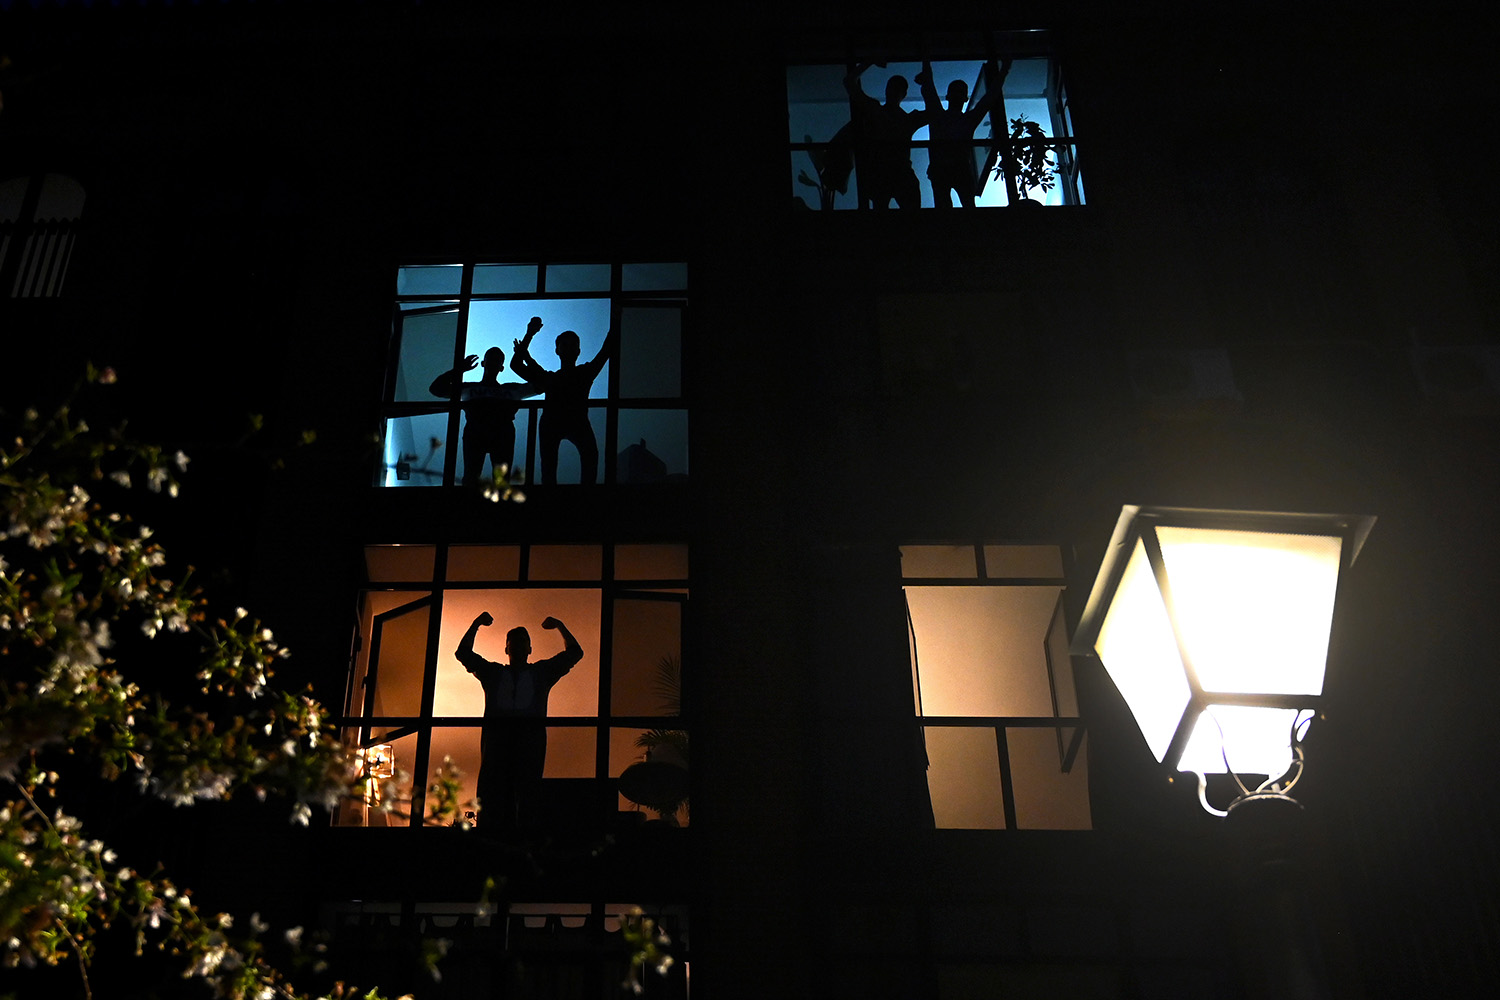 During a nationwide lockdown, neighbors in Madrid applaud from their windows in tribute to the health care workers dealing with the COVID-19 pandemic March 28. GABRIEL BOUYS/AFP via Getty Images